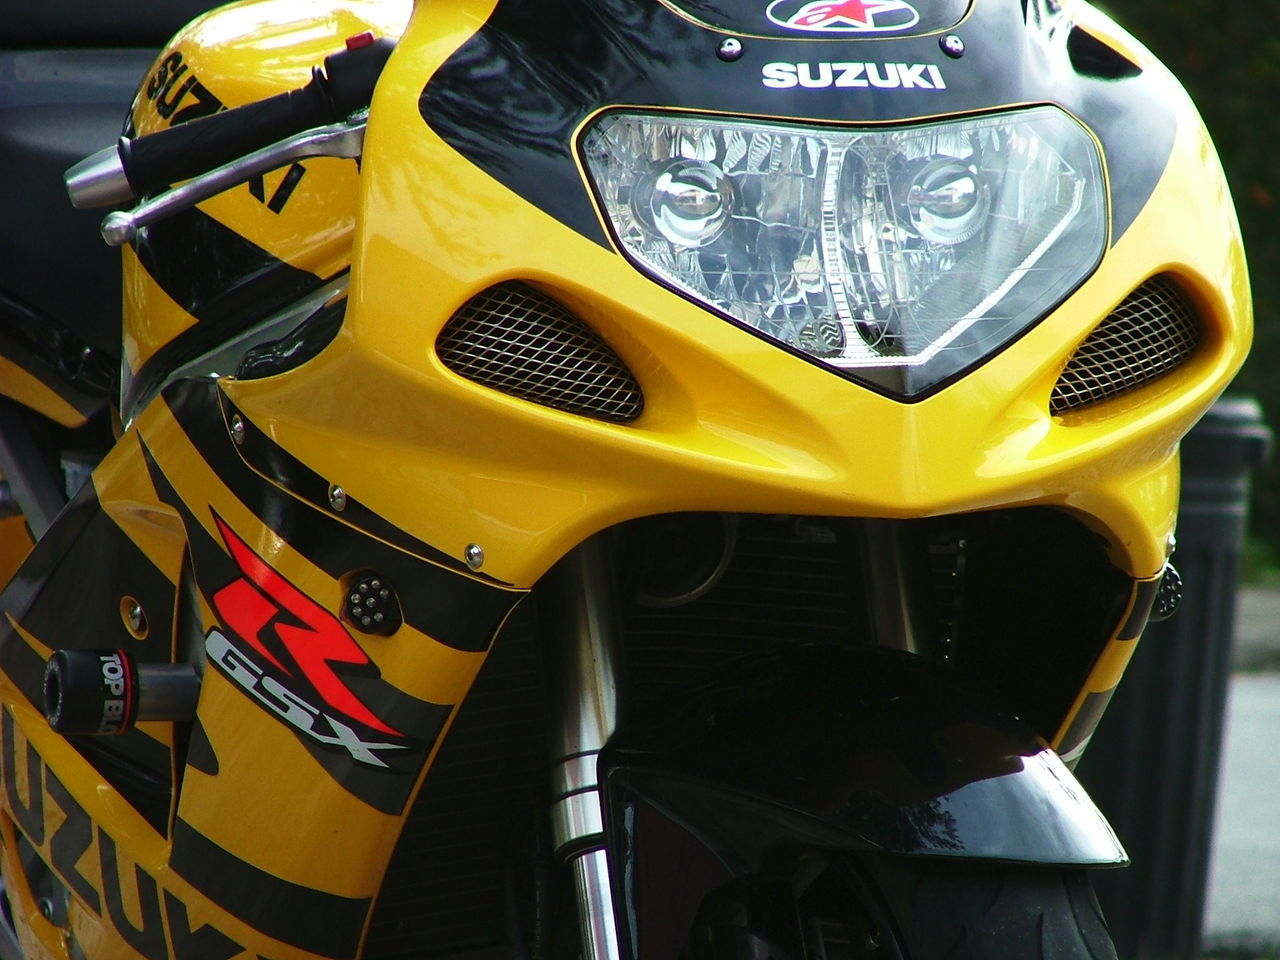 Gixxer 750 Cc Suzuki Gsxr 750 Suzuki 2002 Superman Black And Yellow  Eurotail Race Bike Racebred Racing Motorcycle Special Edition Yellow Car Close-up No People Outdoors Day